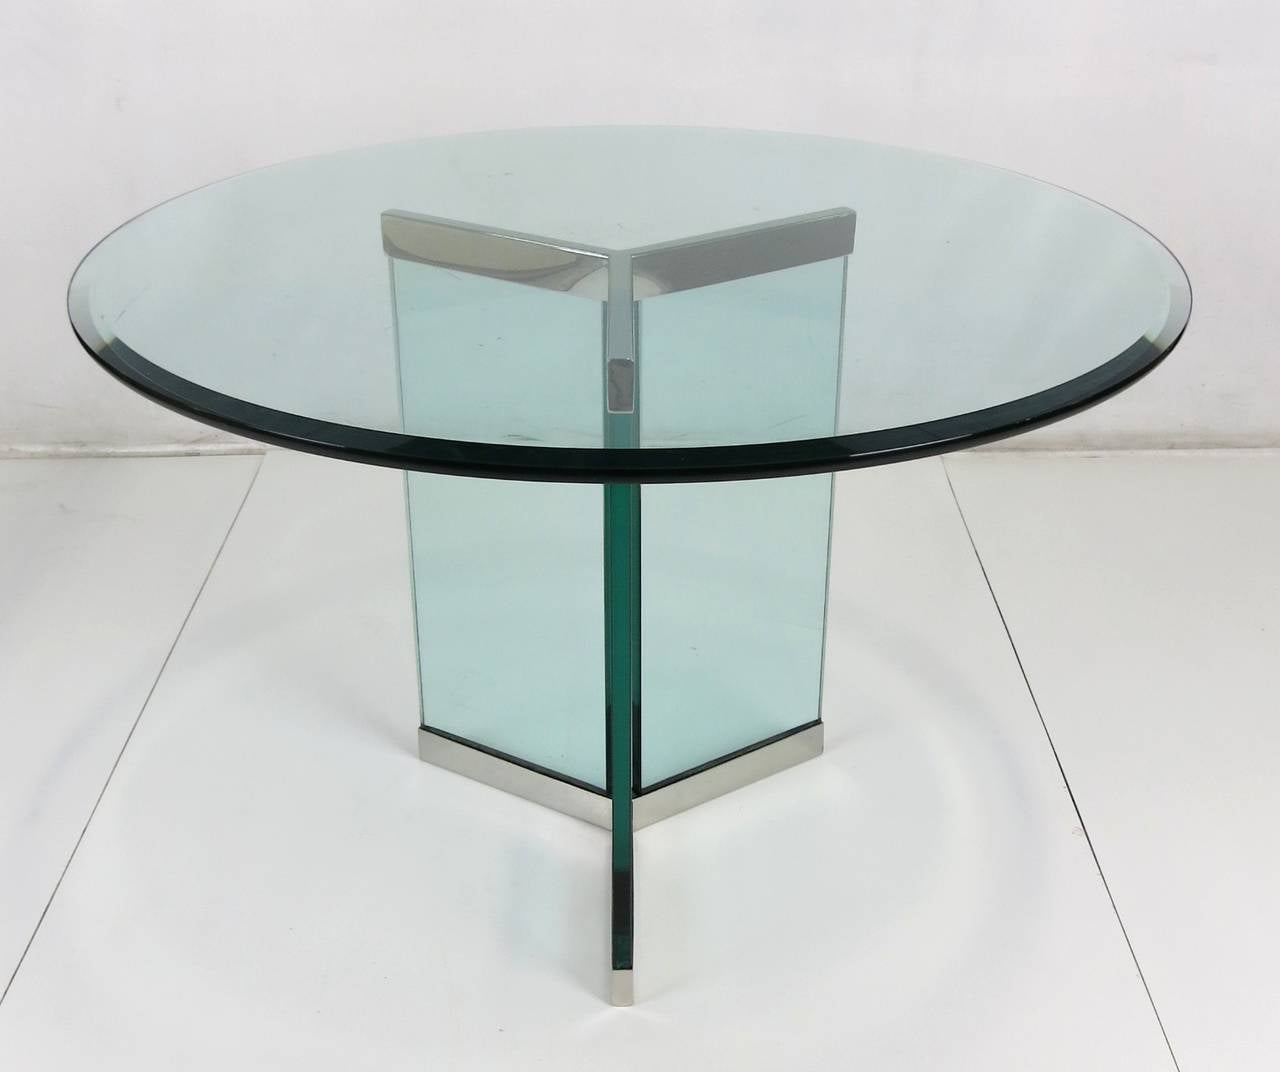 Genial Mid Century Modern Pair Of Stainless Steel Delta Form Table Bases By Pace  For Sale